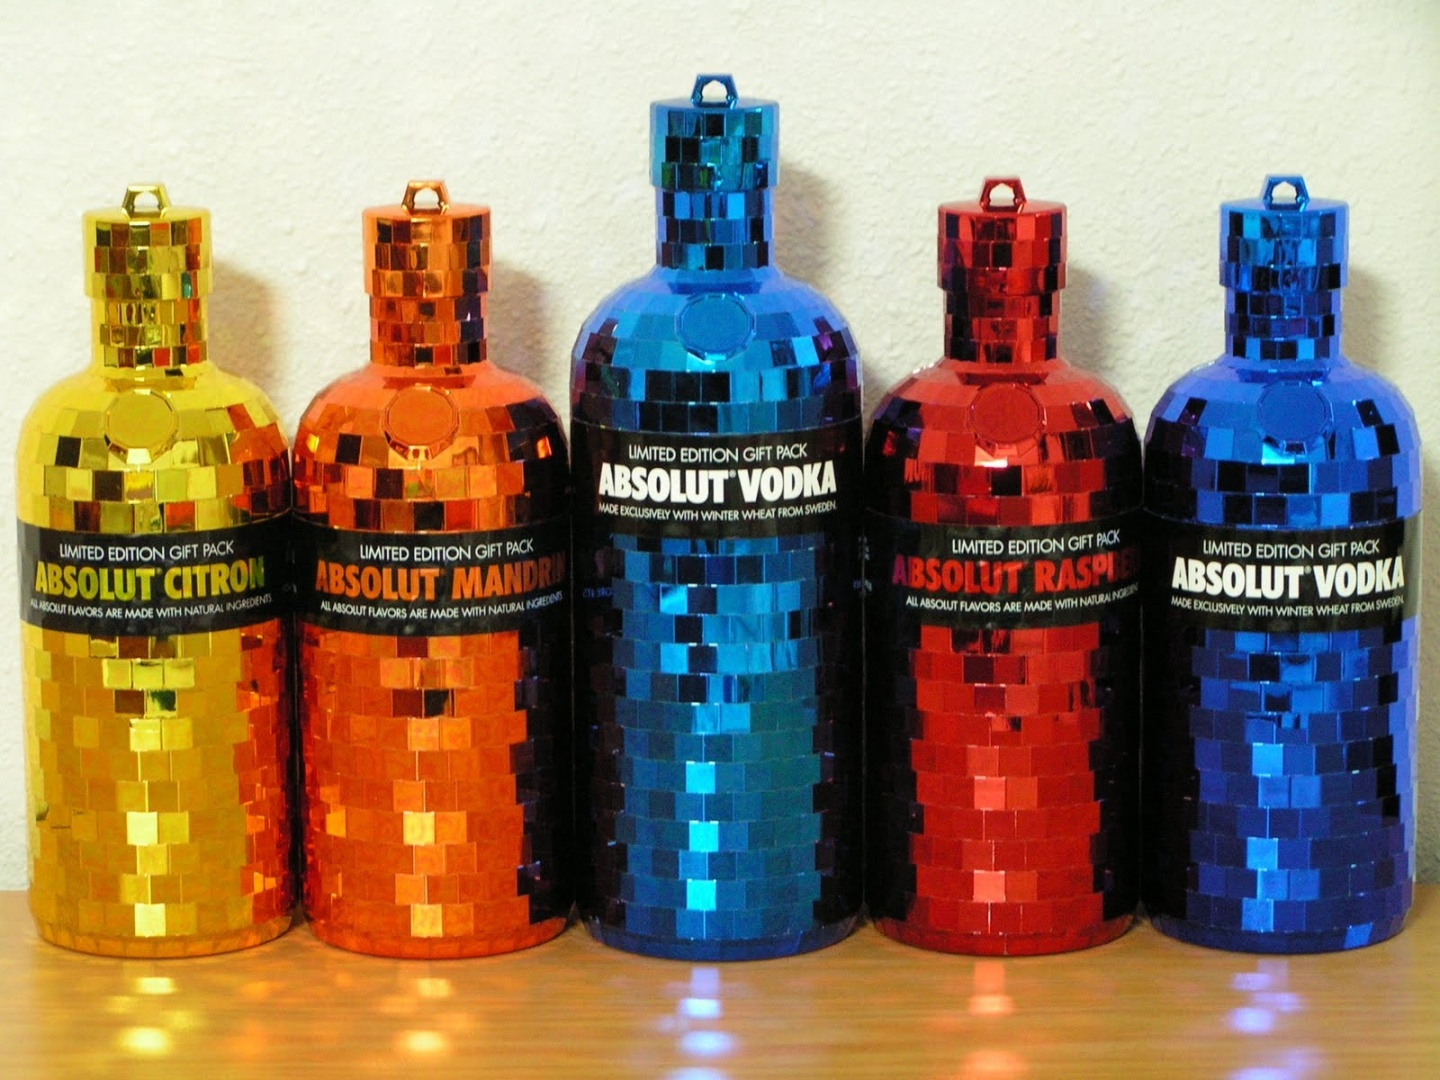 Absolut Vodka Limited Edition wallpapers | Absolut Vodka Limited